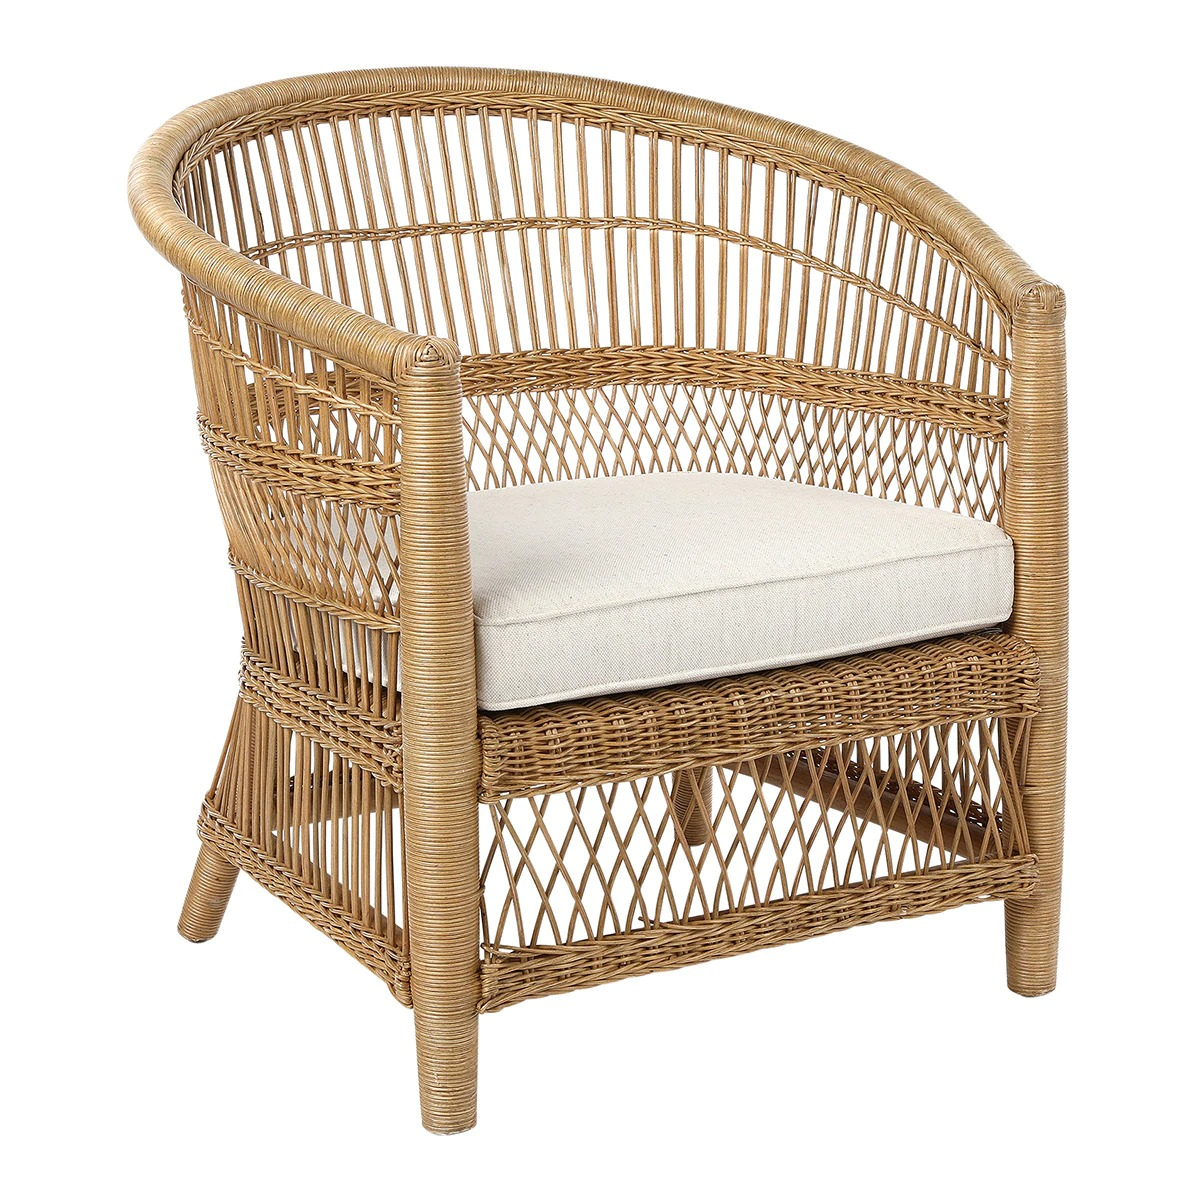 Lumpur rattan armchair from the Lumpur Collection